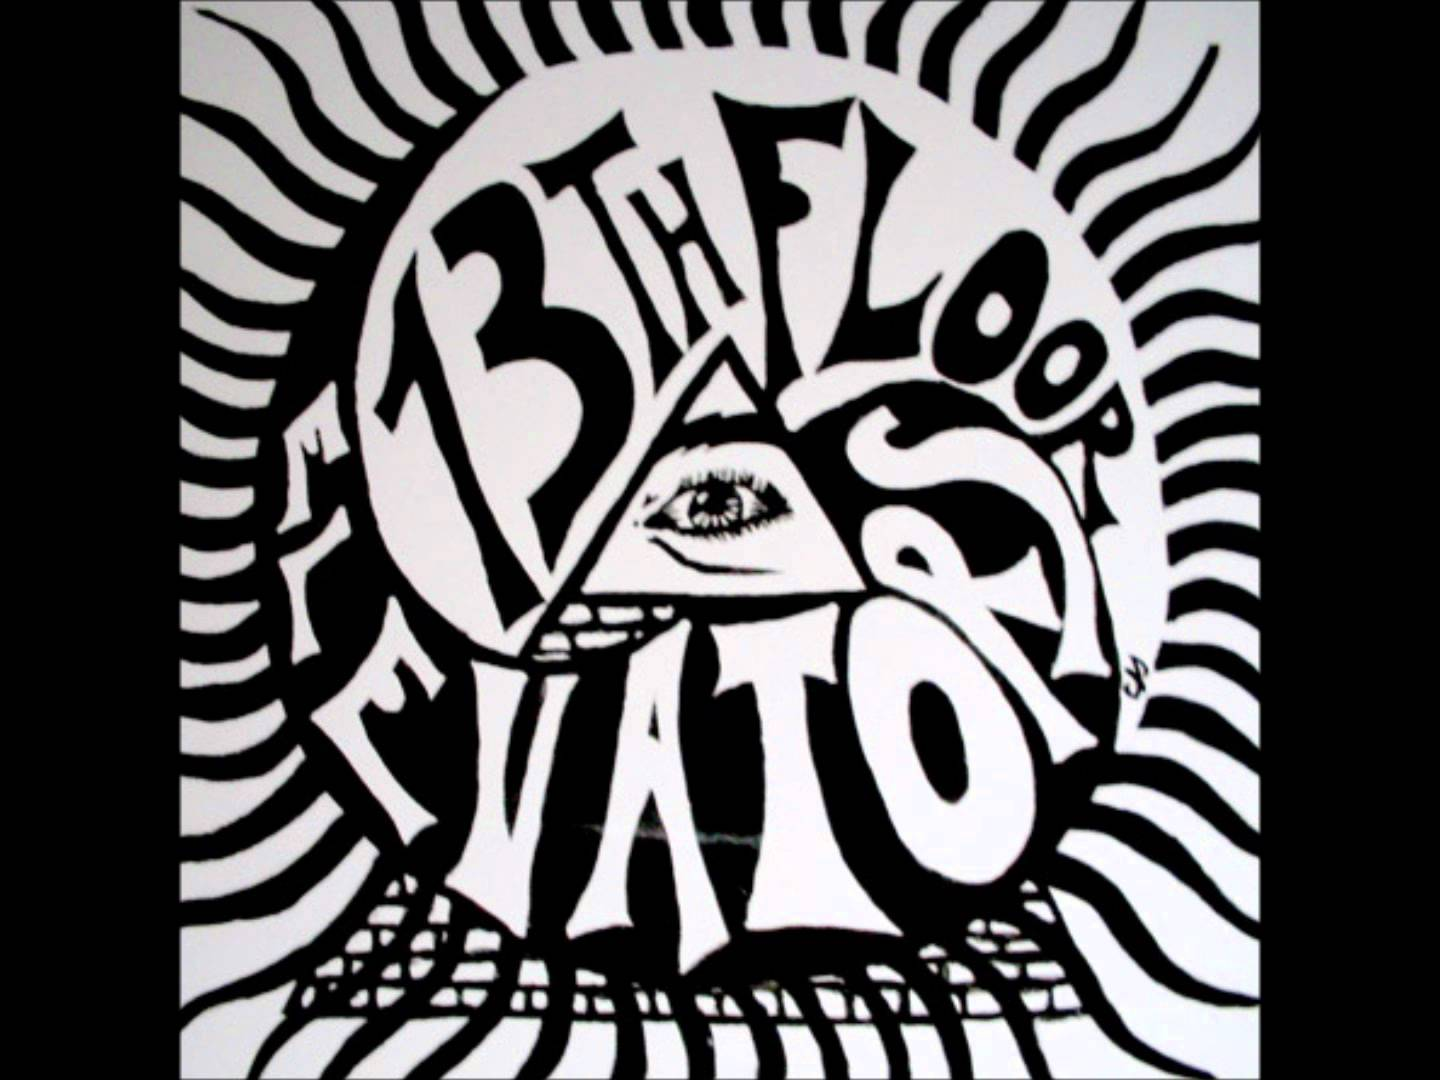 You Re Gonna Miss Me 13th Floor Elevators Chords